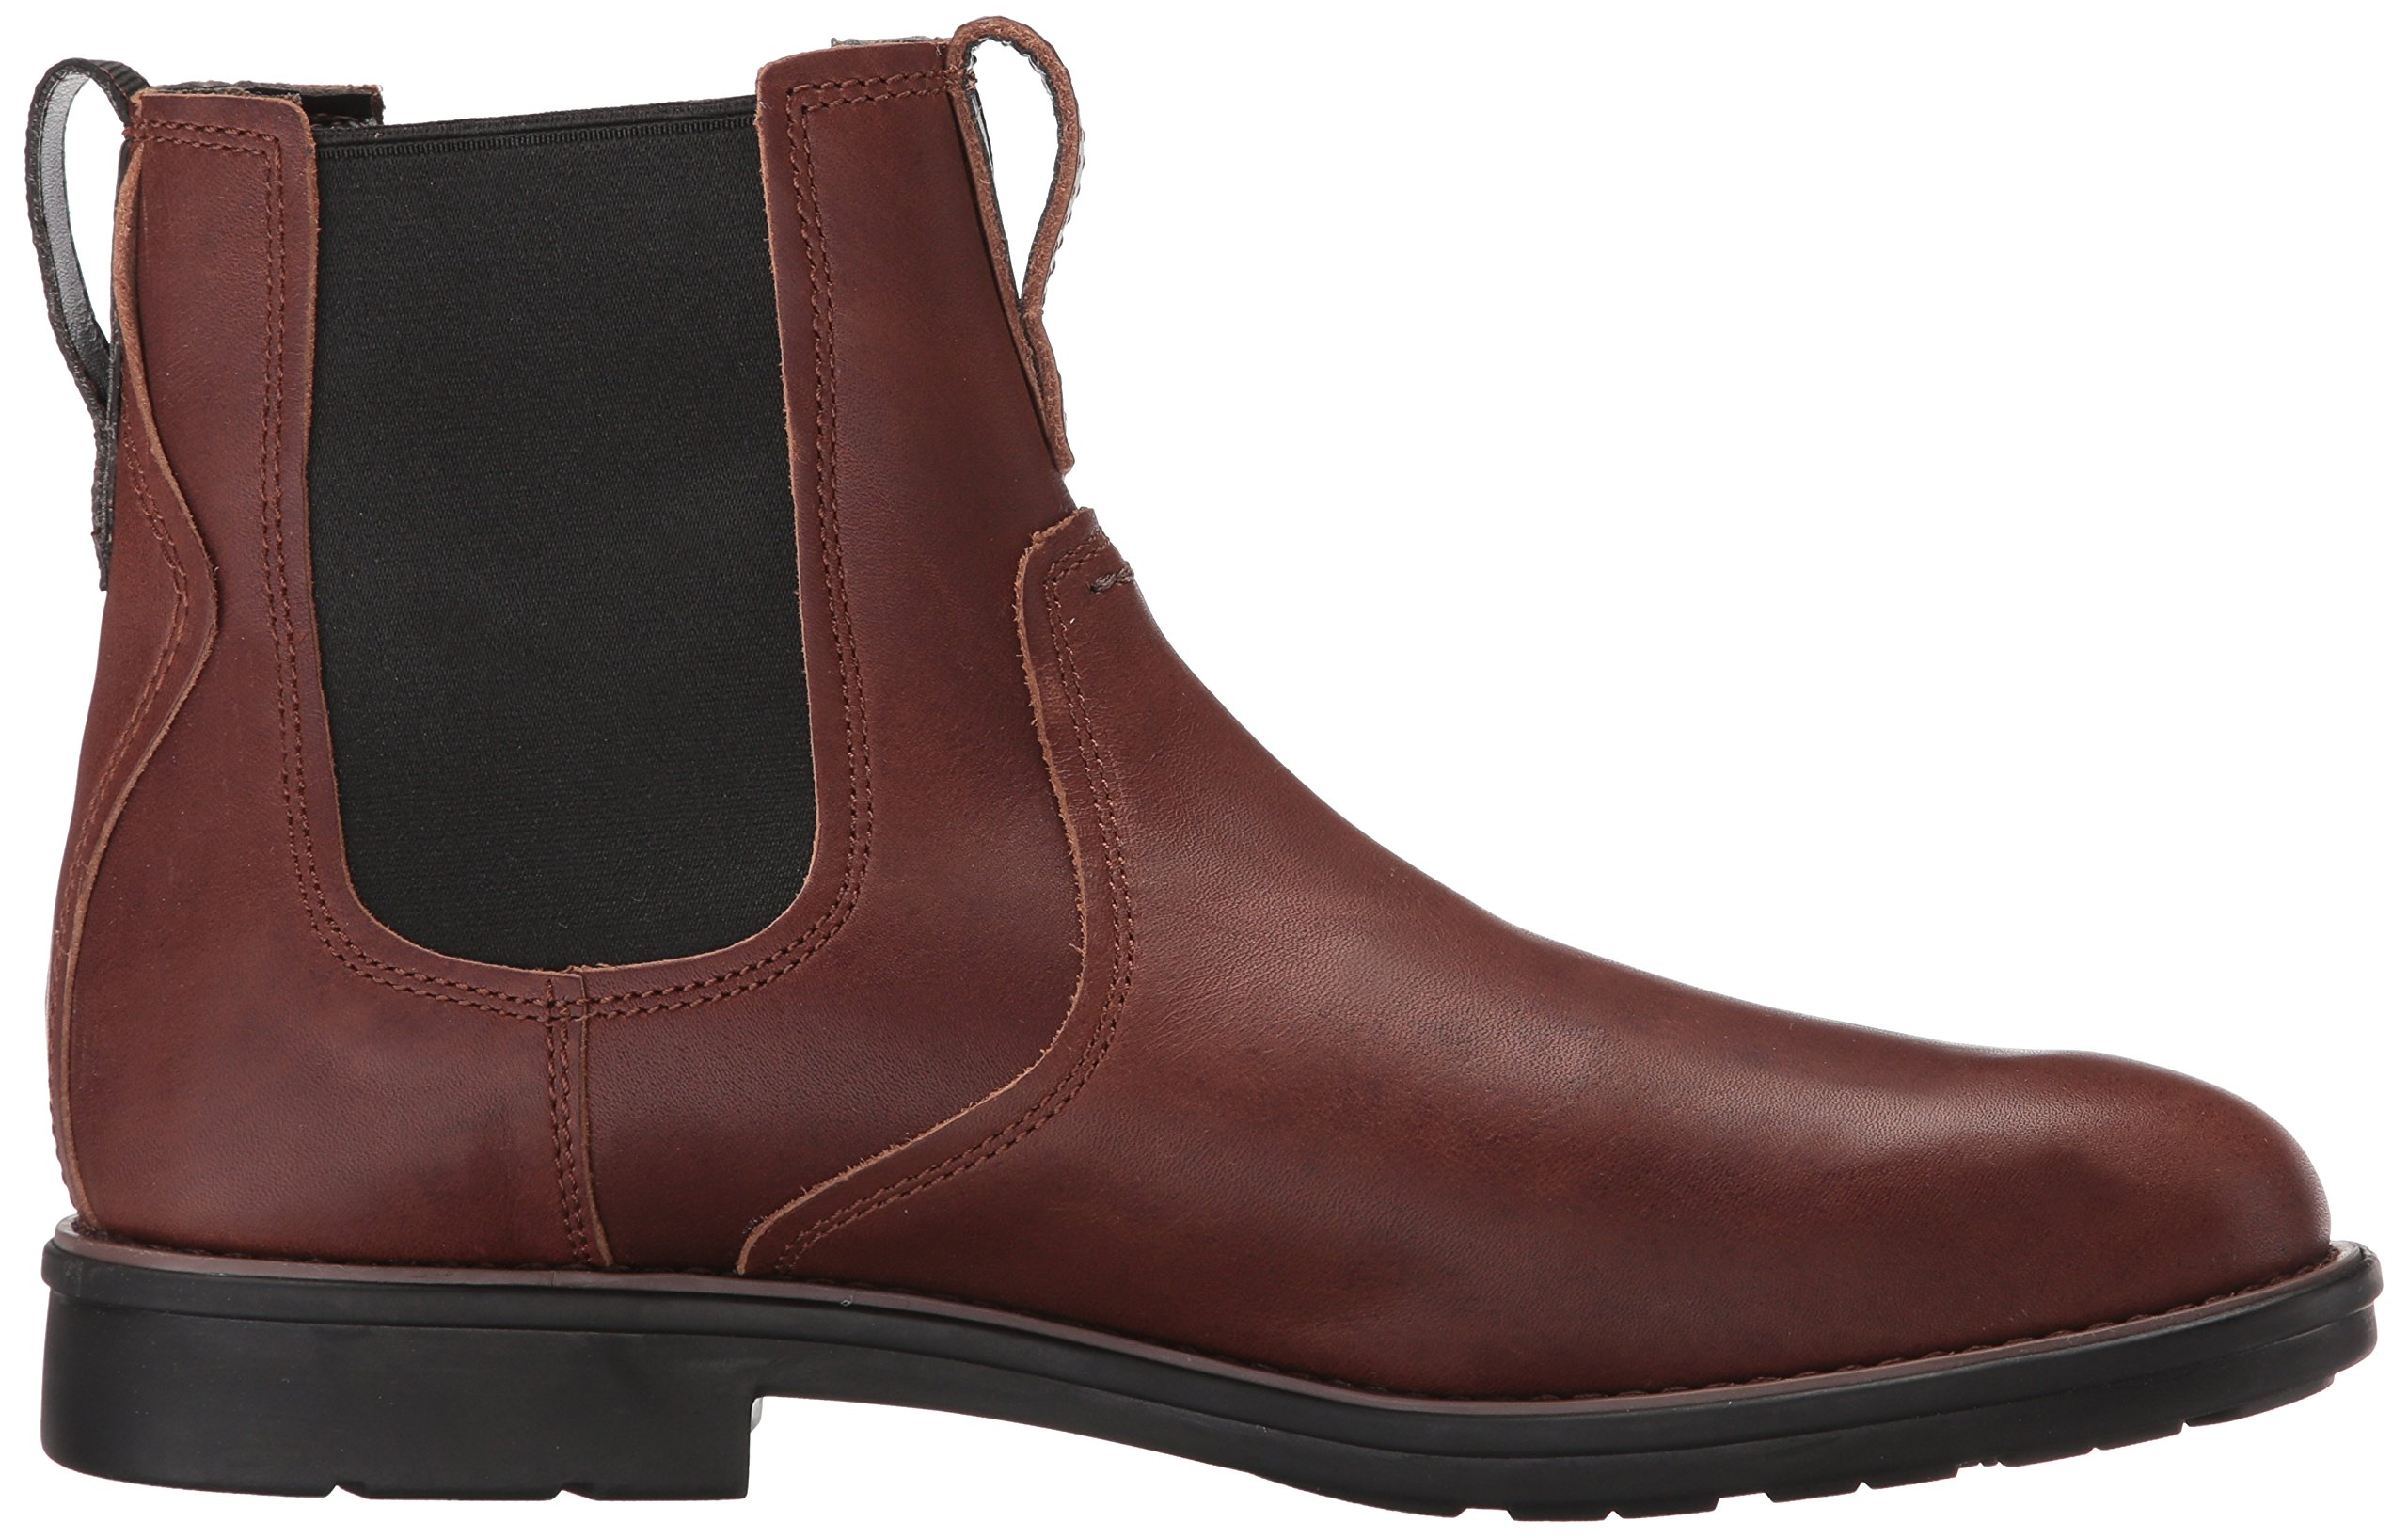 Timberland Men's Carter Notch Chelsea Boot, Dark Brown Full Grain, 14 C US by Timberland (Image #7)